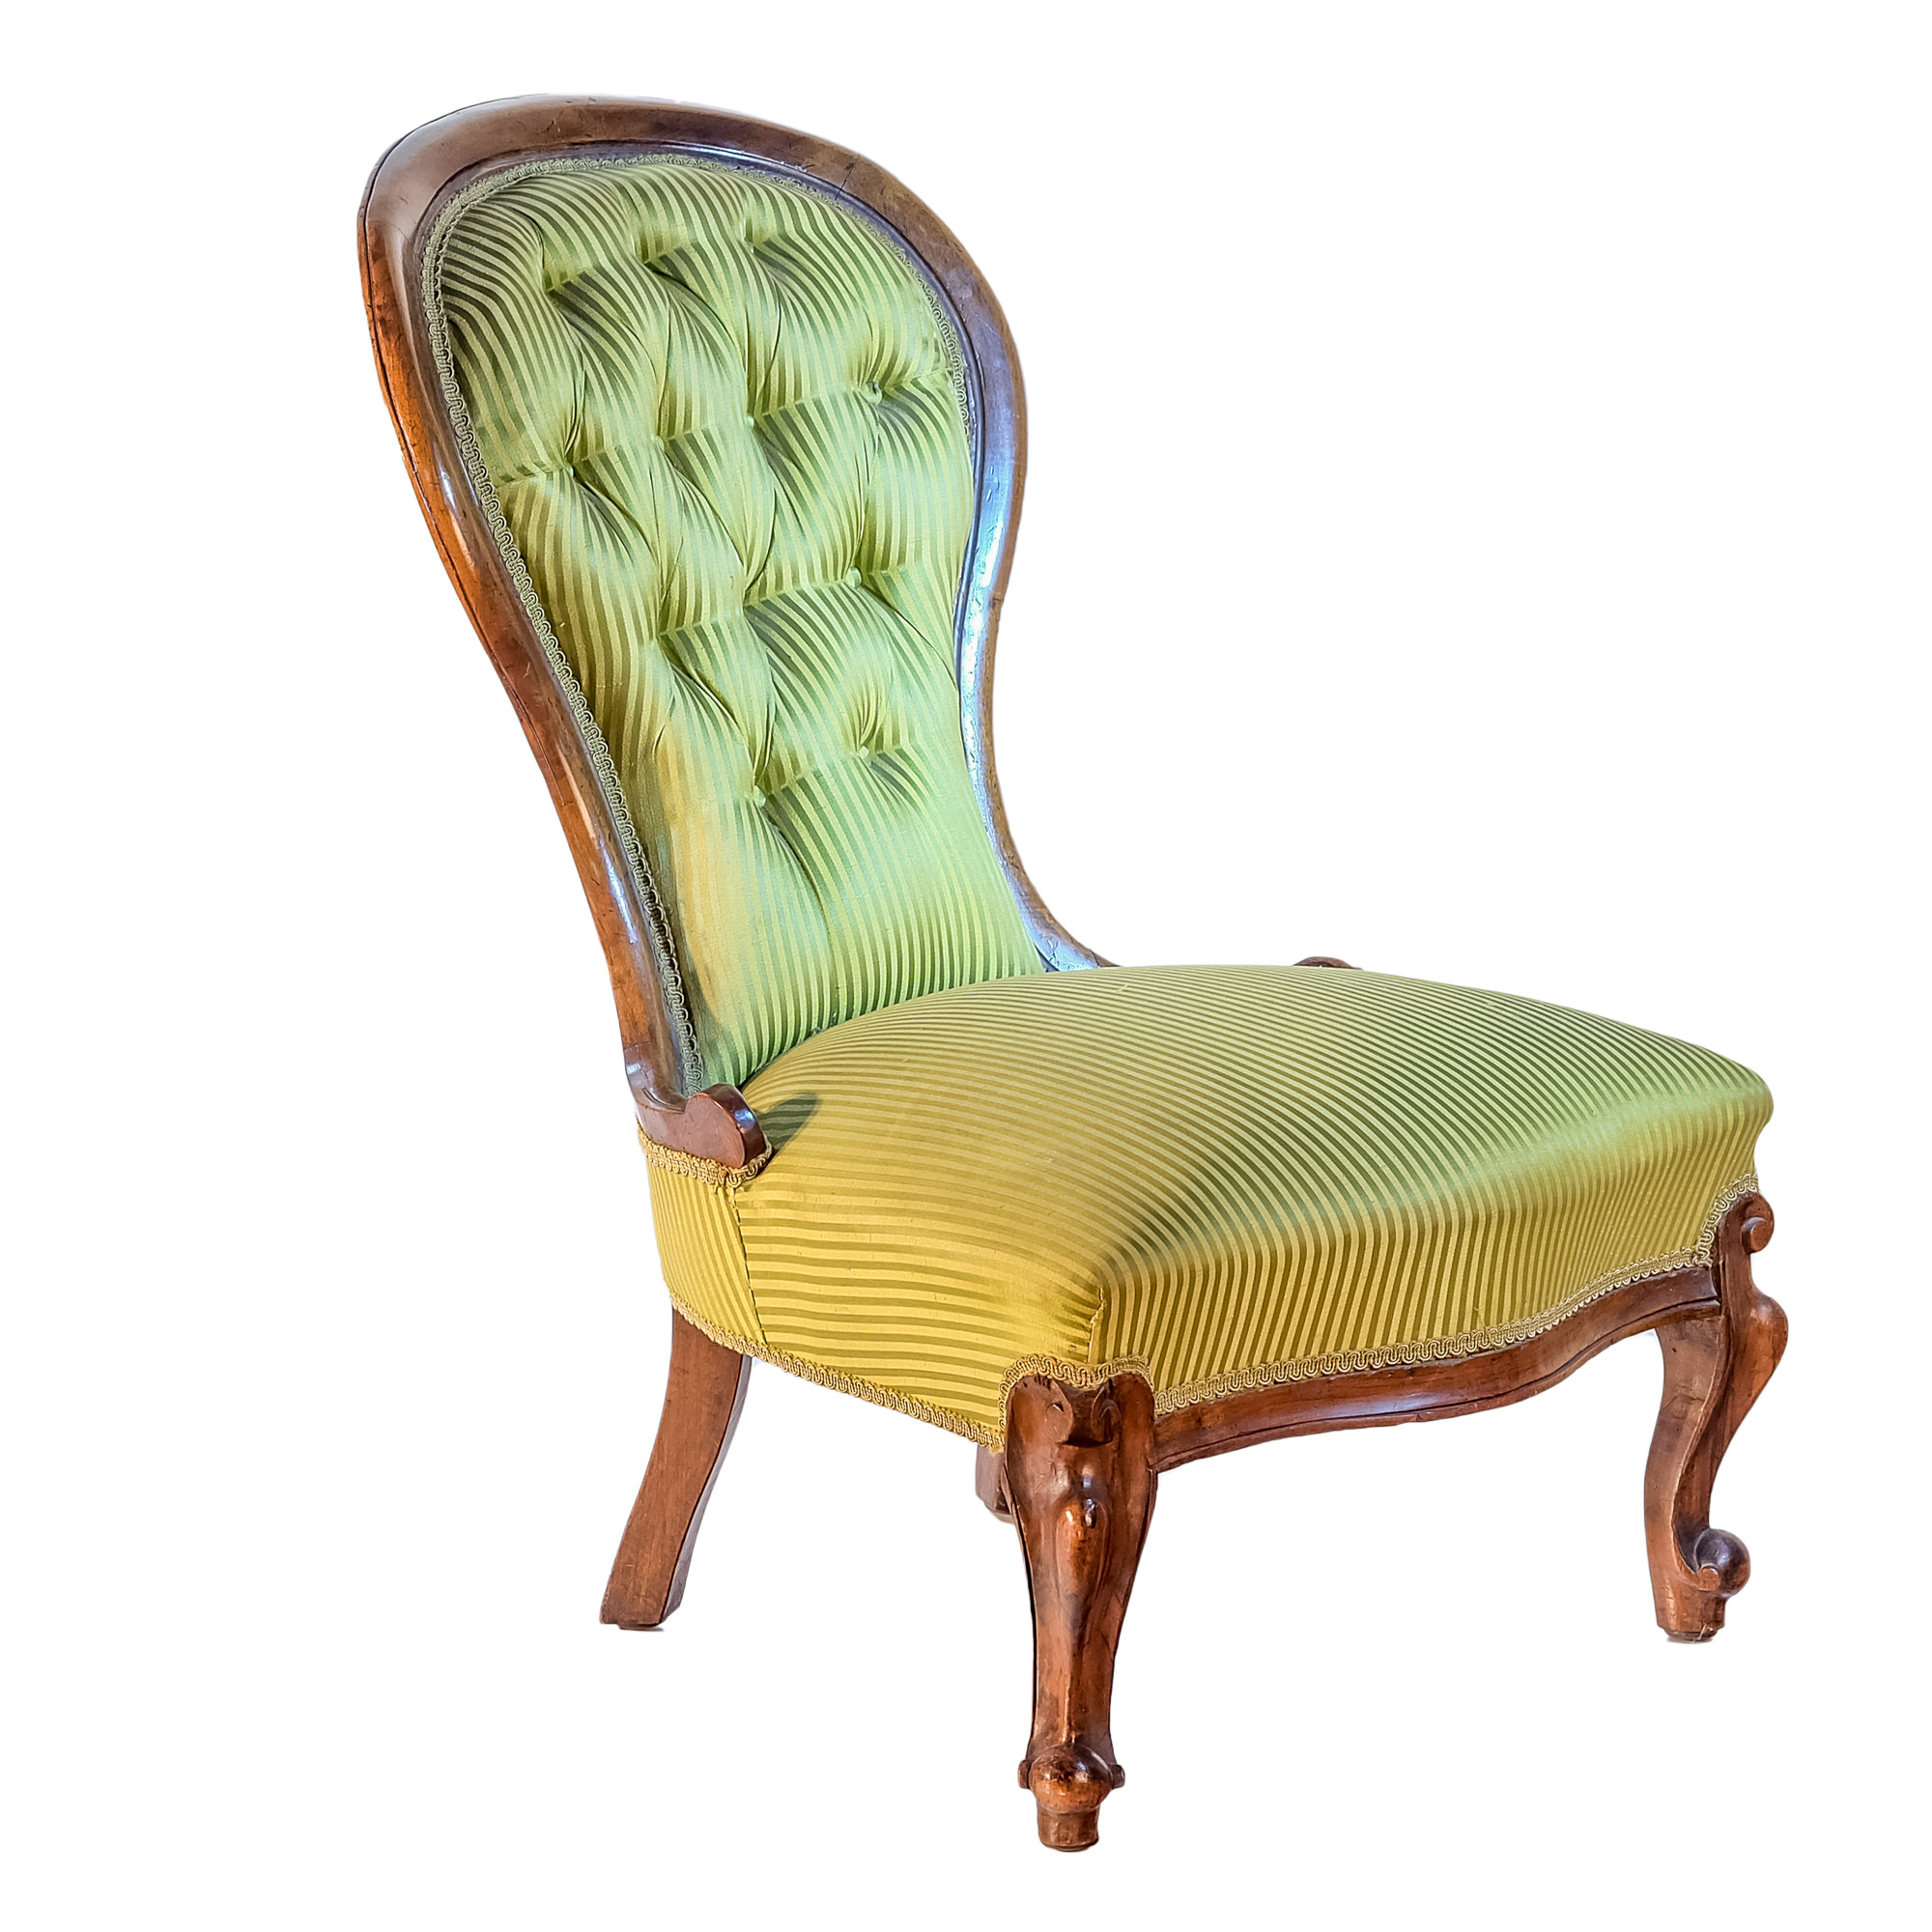 'Victorian Mahogany Grandmother Chair with Striped Satin Brocade Upholstery Circa 1880'